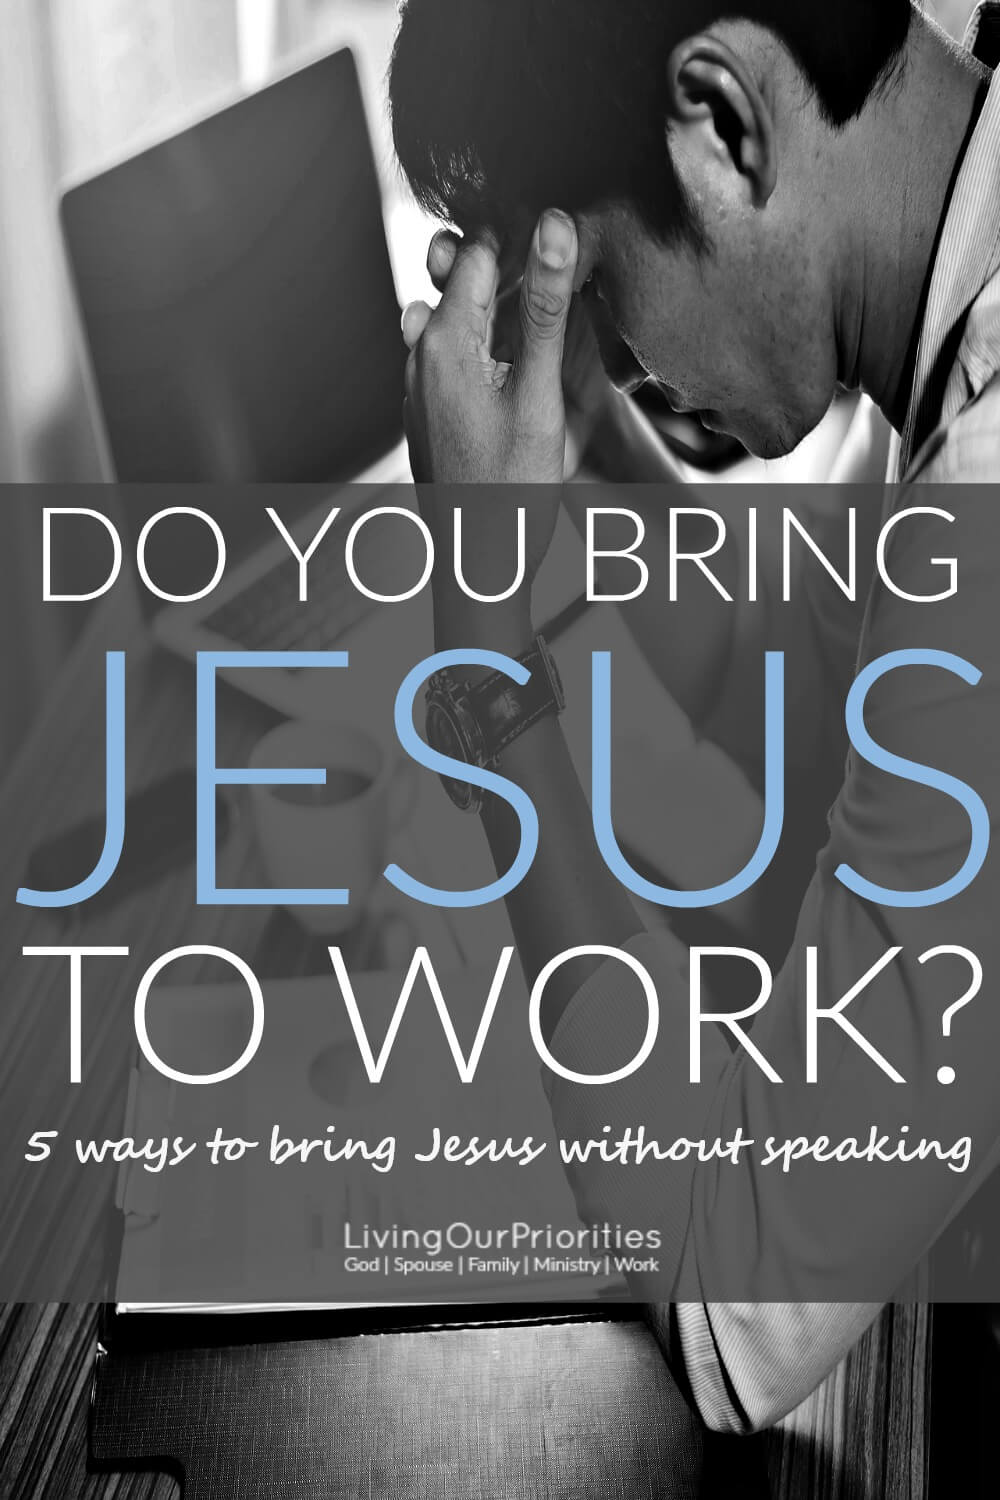 How often do we go to work without considering the impact we can make? If you're a follower of Jesus Christ, there's so much more to just going to work. Here are 5 ways to bring Jesus to work without speaking a word.